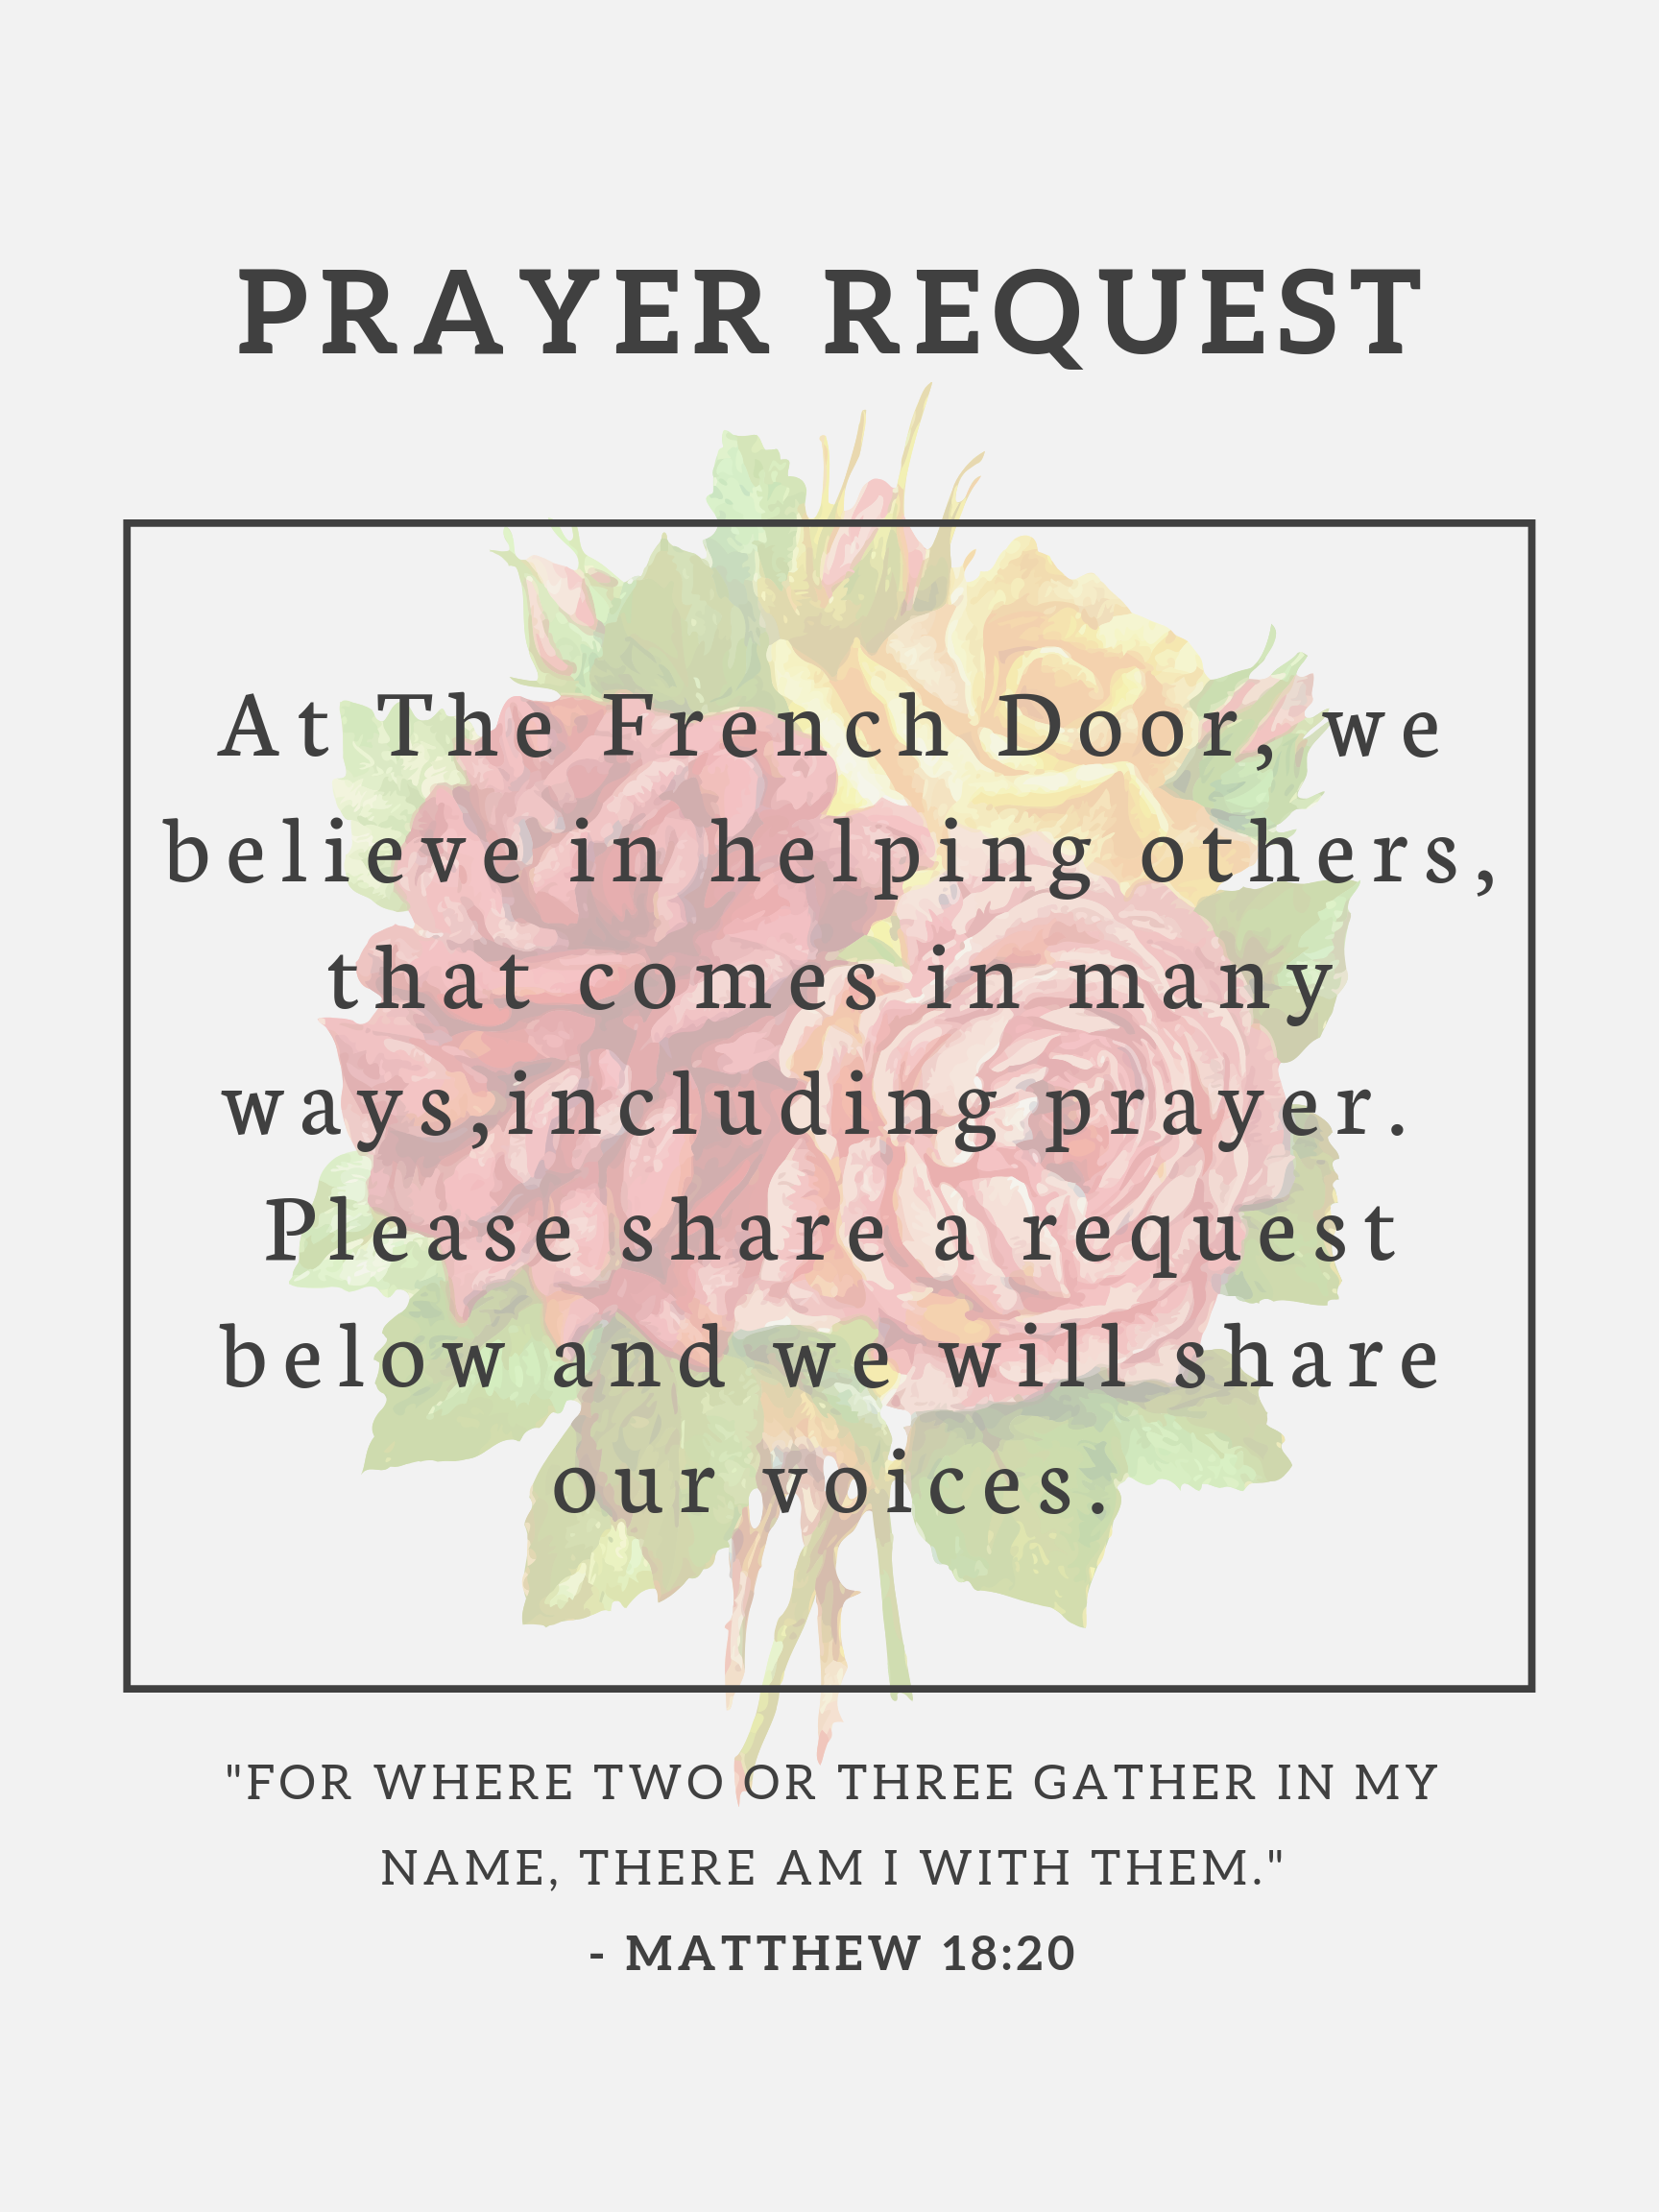 At The French Door, we believe in helpin